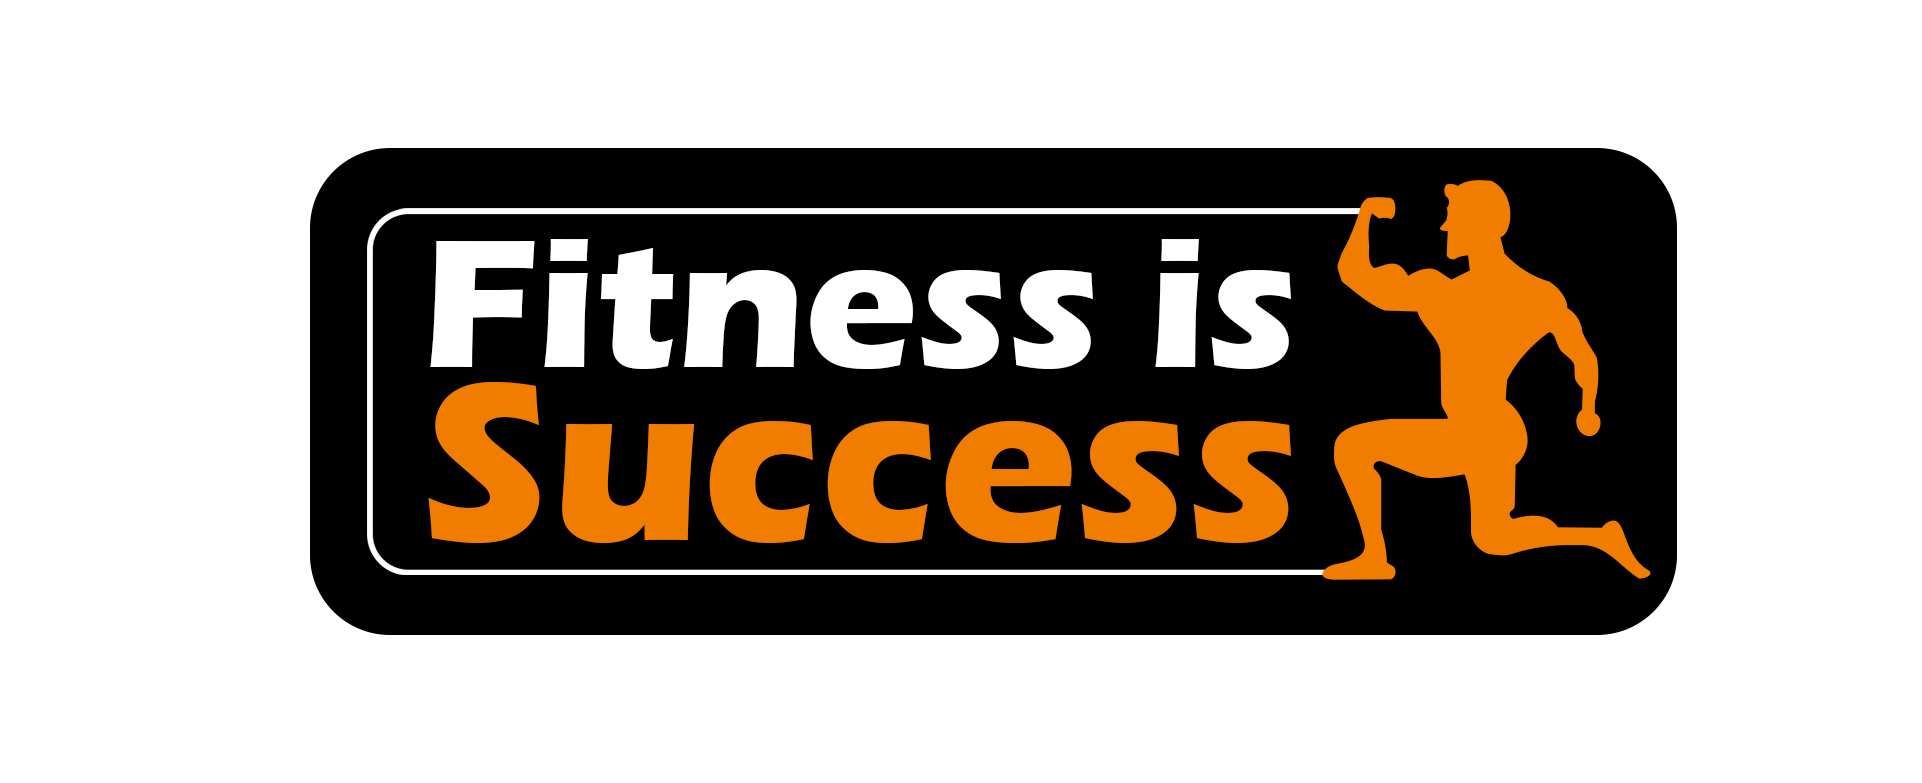 images21 | Fitness is Success